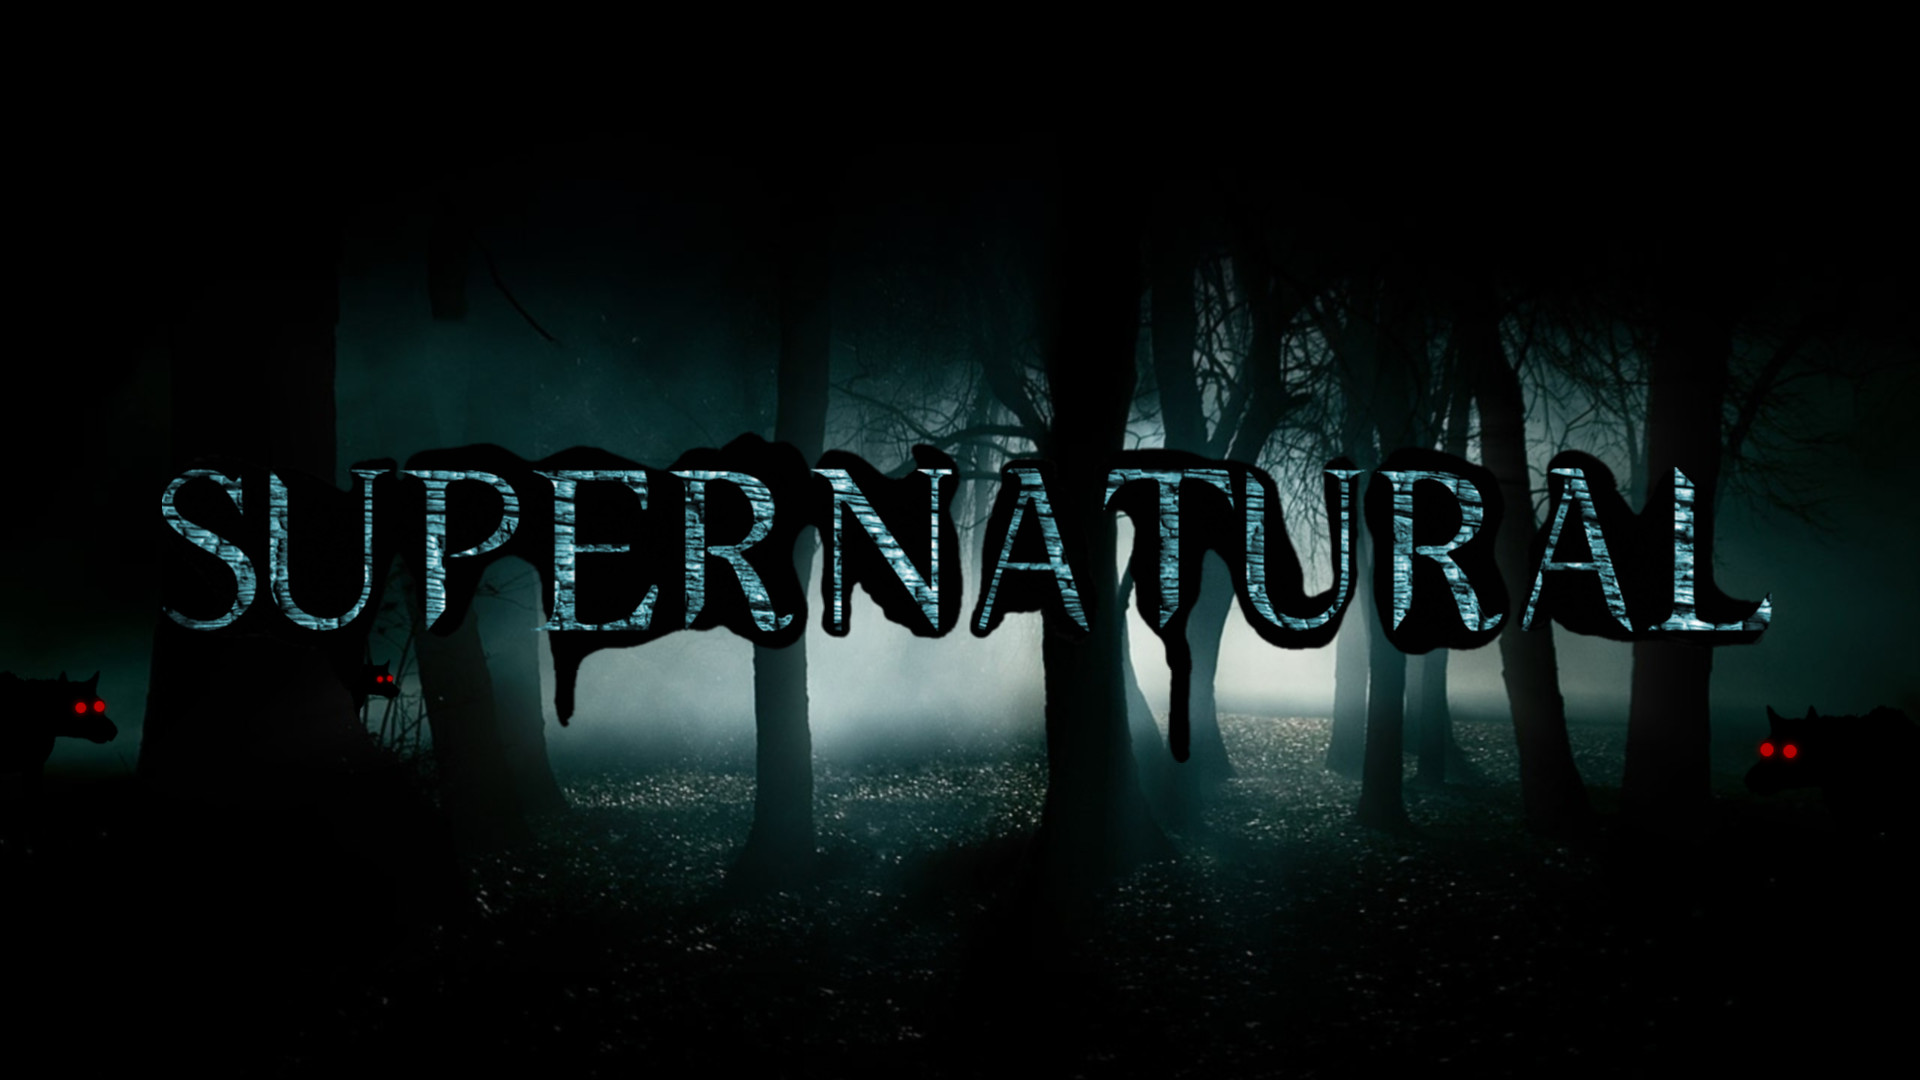 Supernatural px, Top on NMgnCP.com